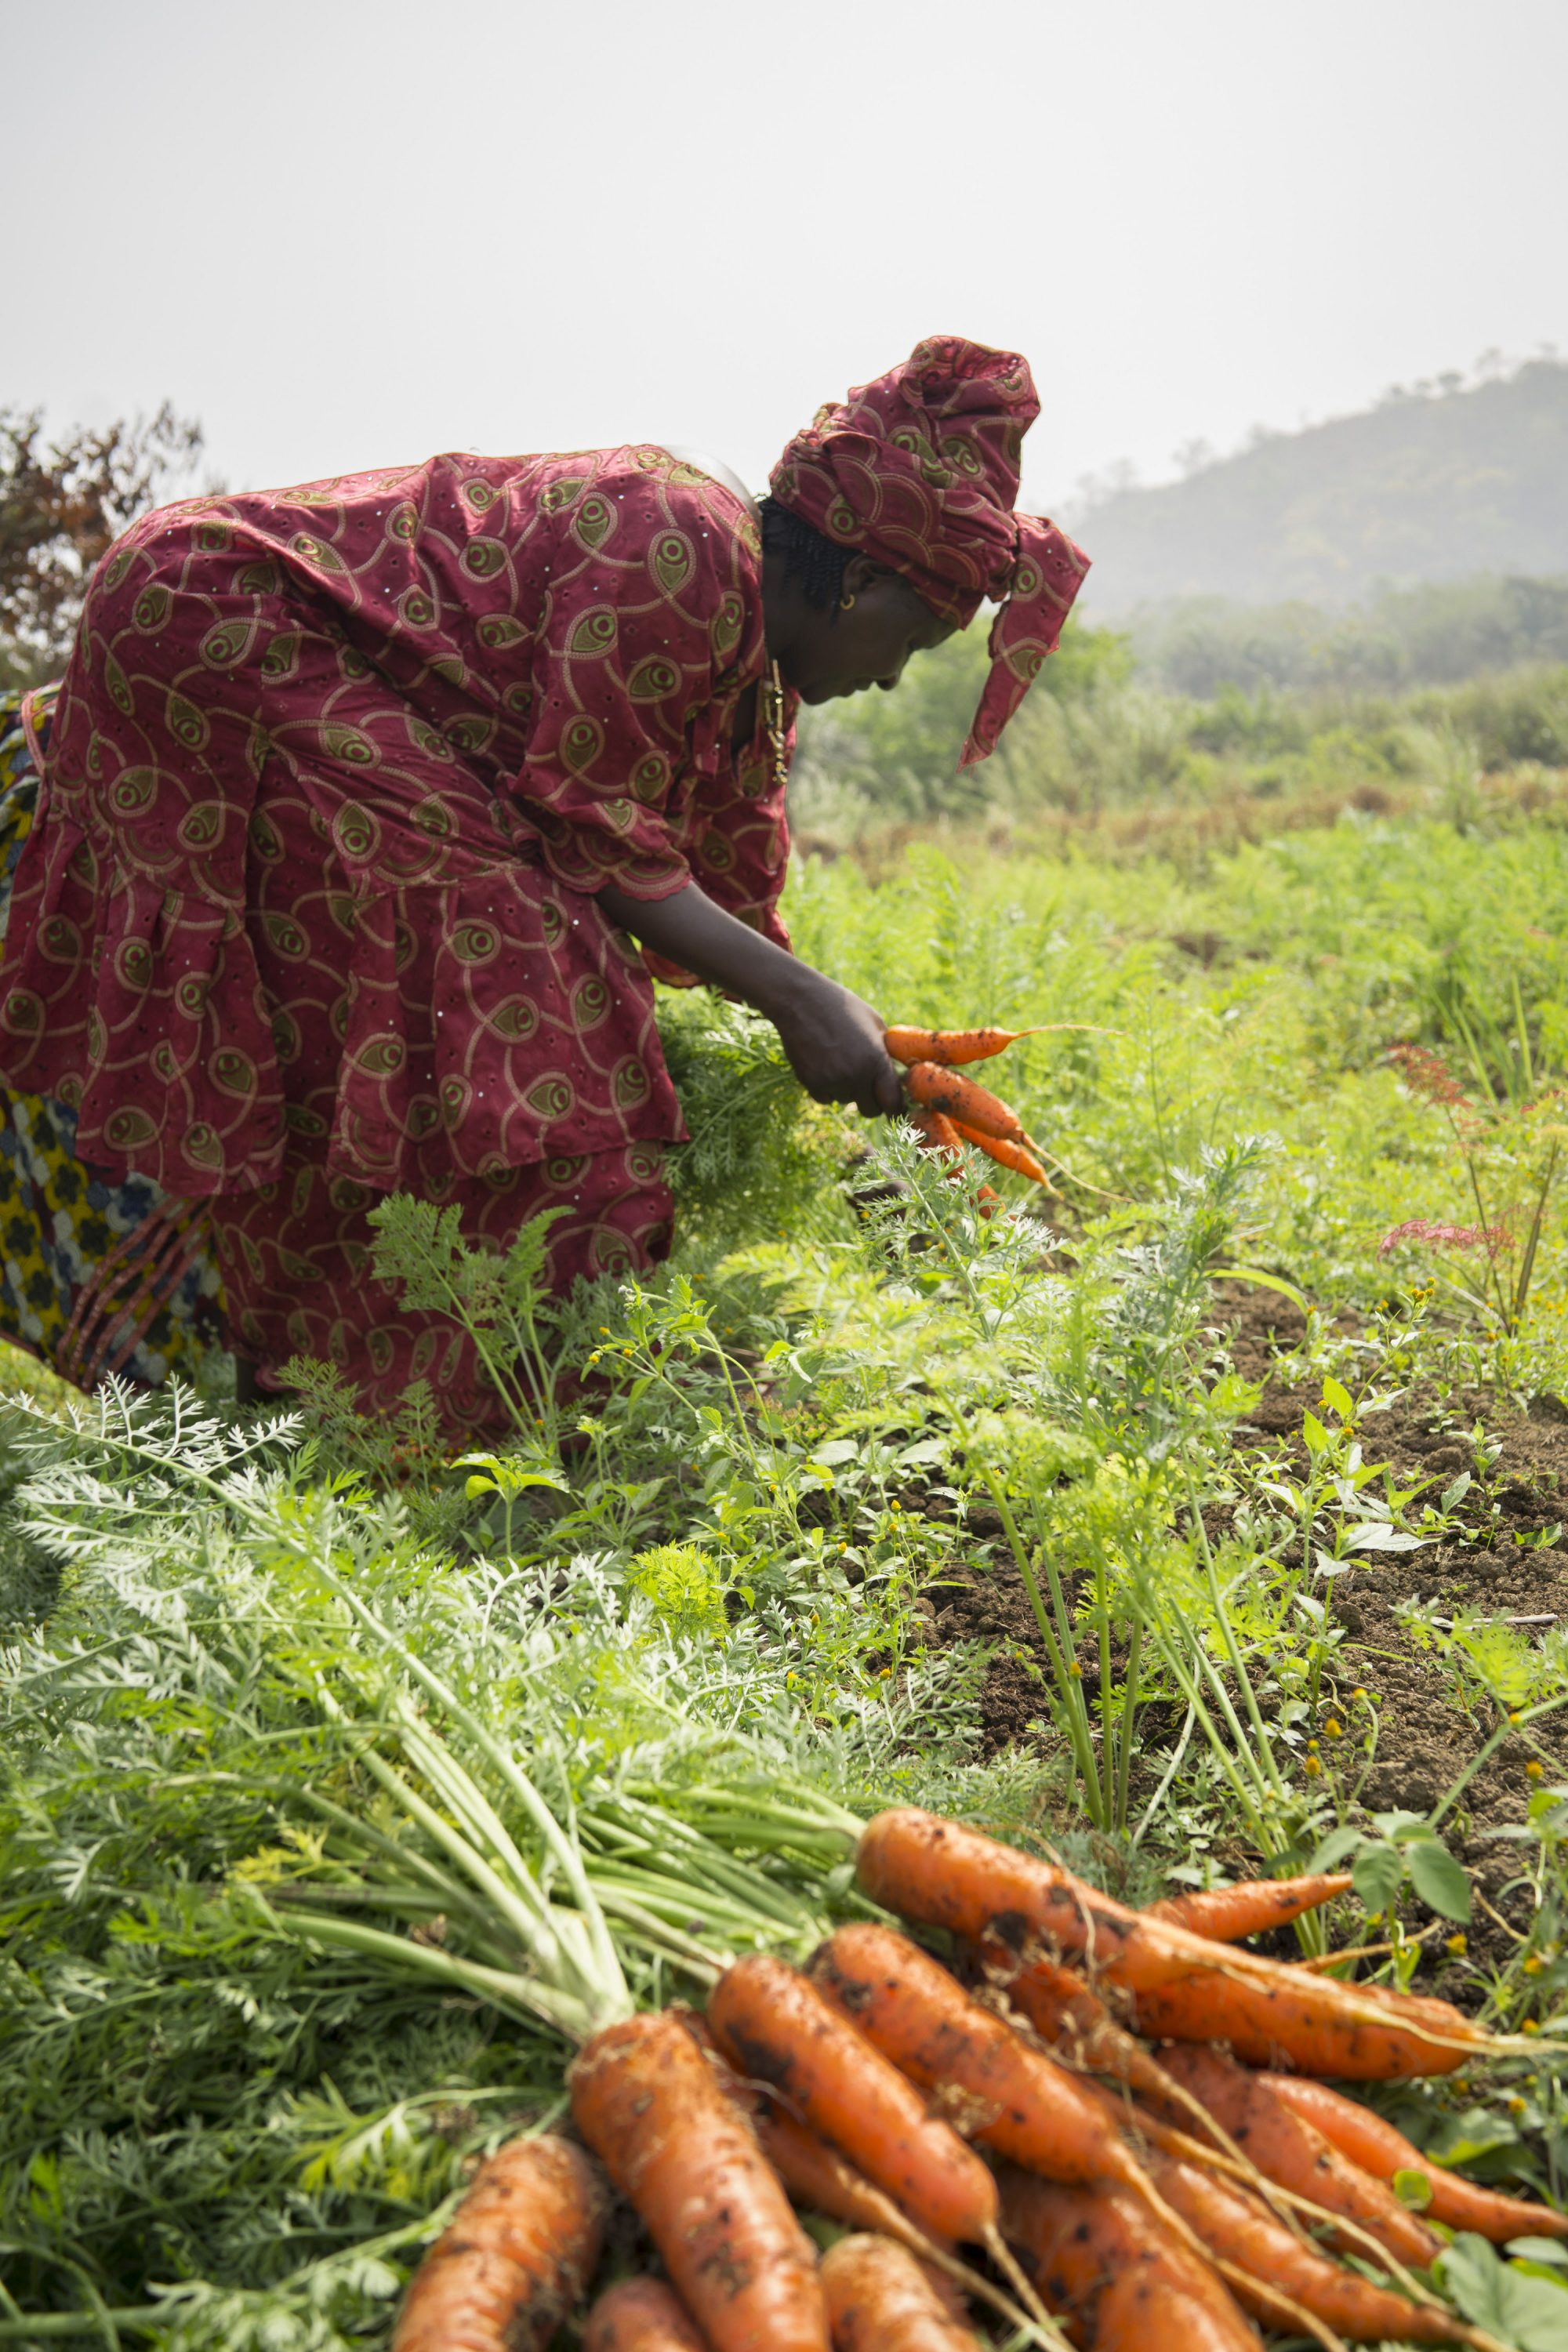 Africa Solidarity Trust Fund boosts Agribusiness Centers in Sierra Leone after Ebola outbreak